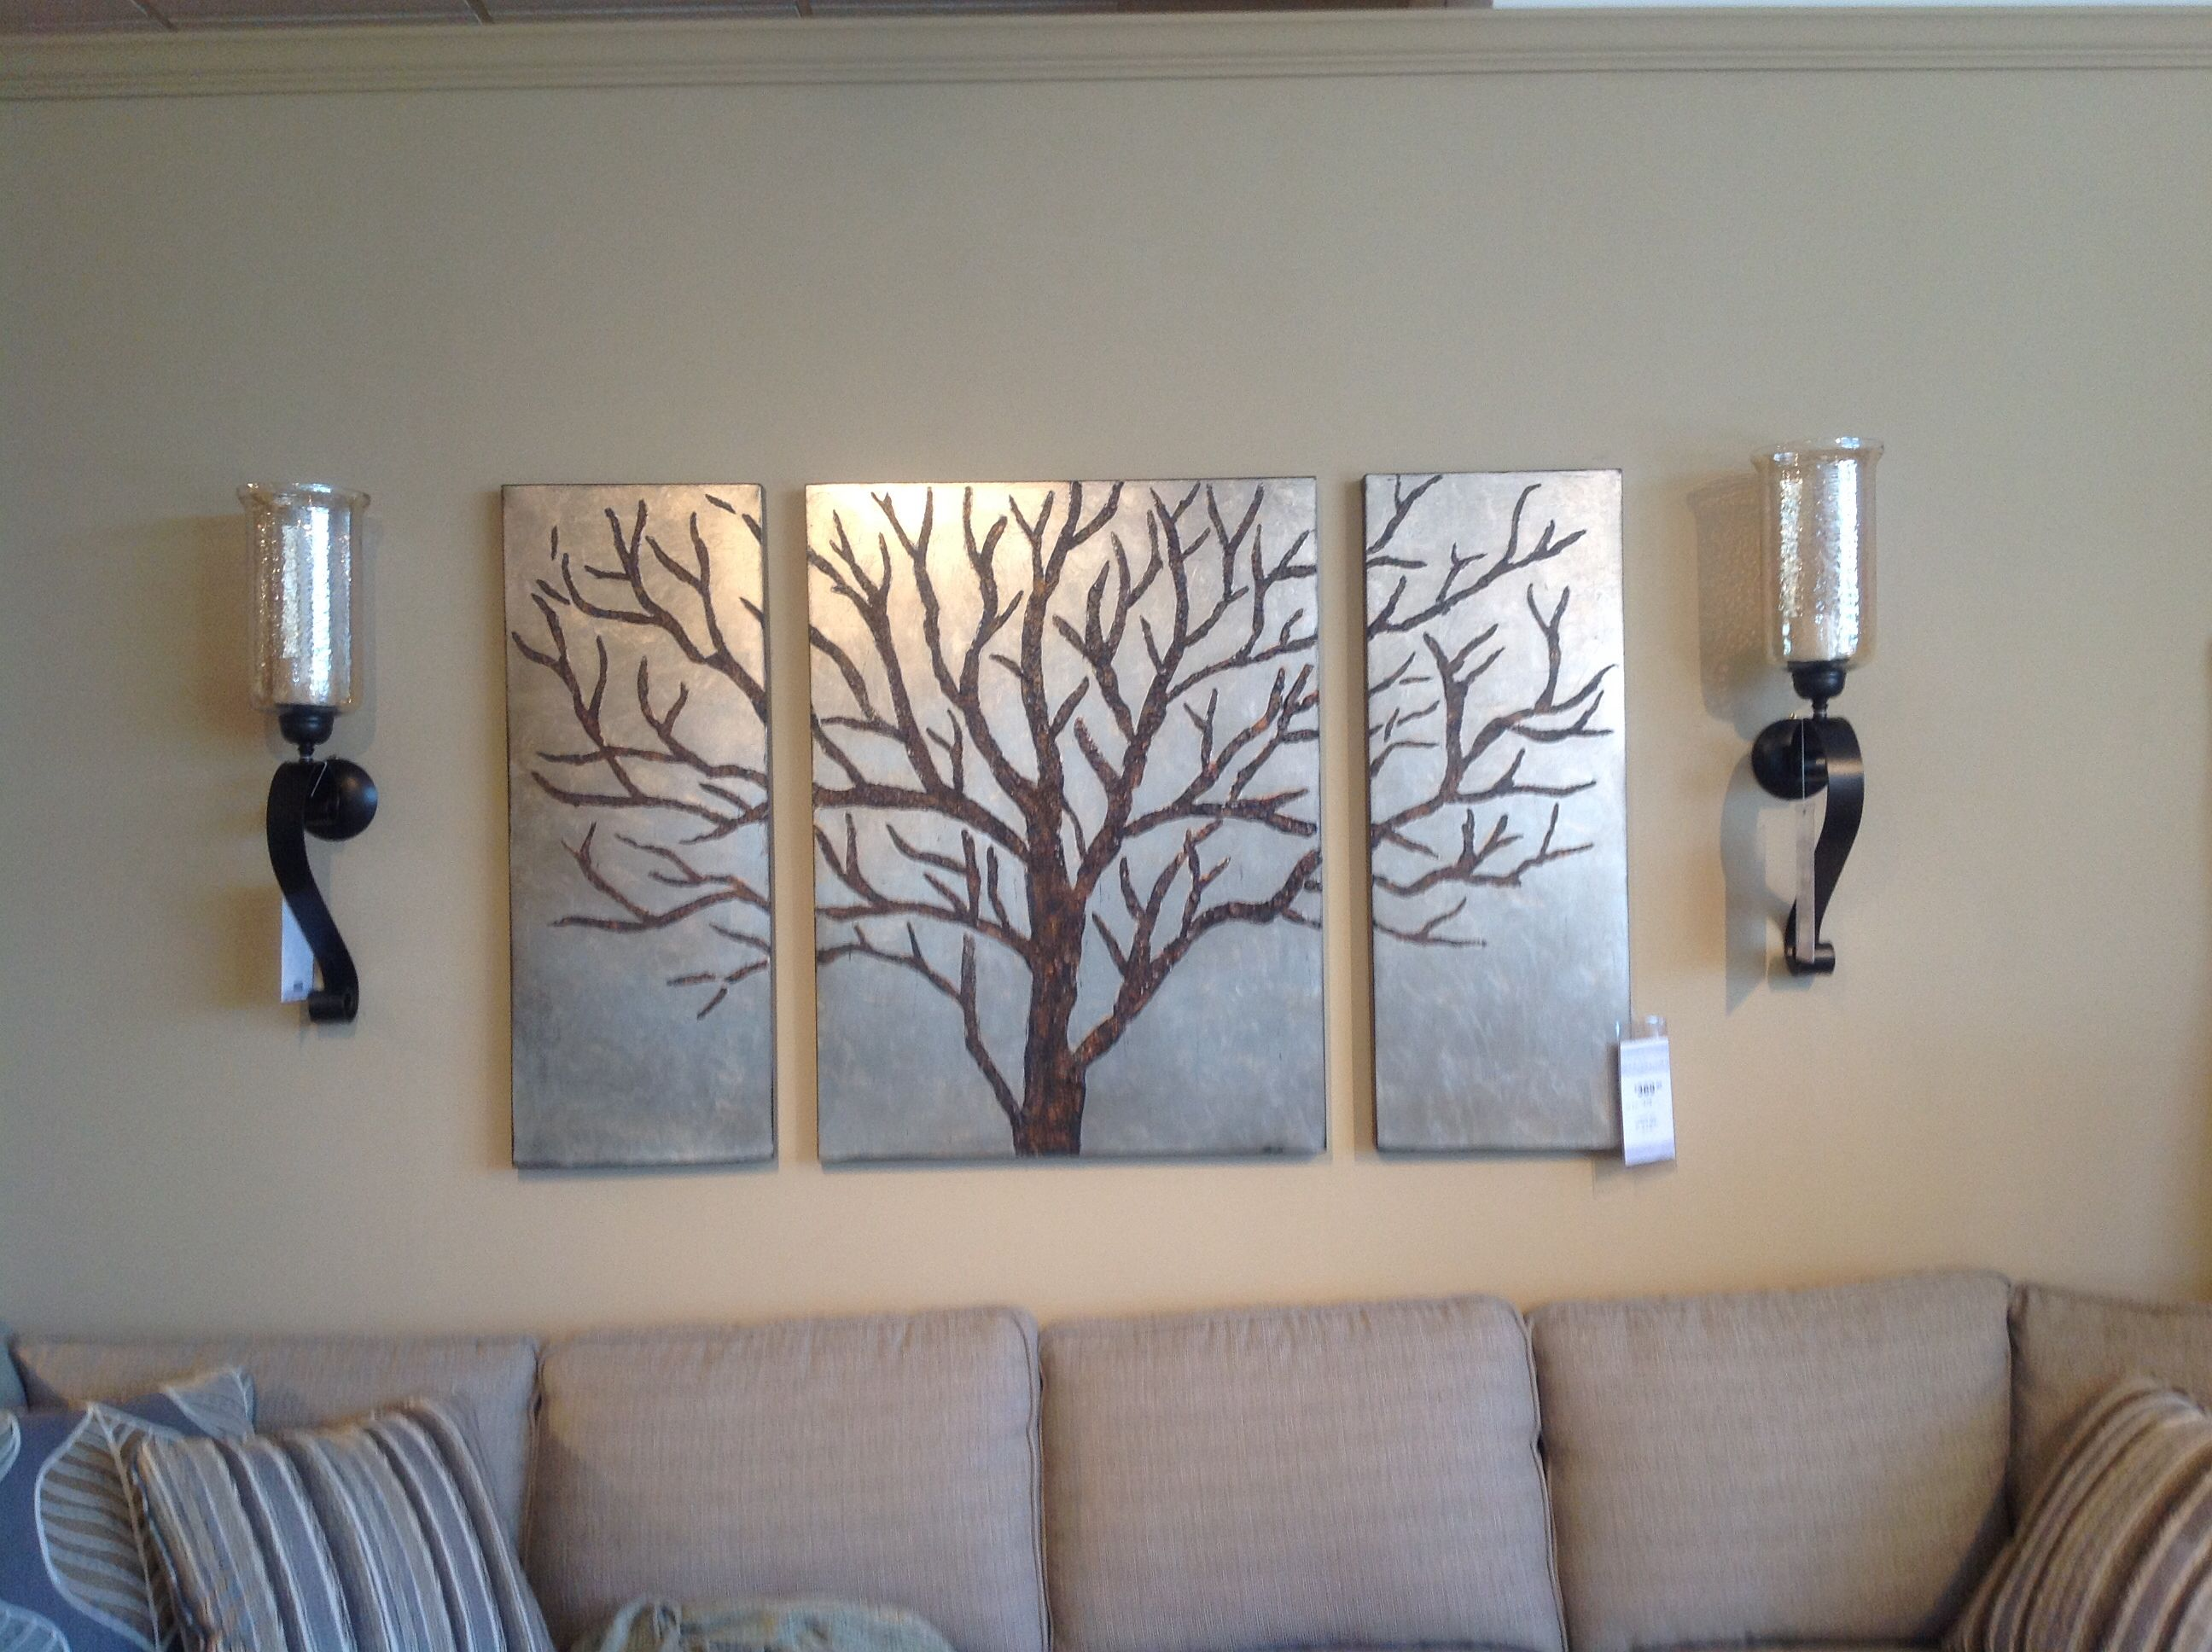 Especially the wall sconces for flanking the metal tree art in especially the wall sconces for flanking the metal tree art in previous pin amipublicfo Image collections